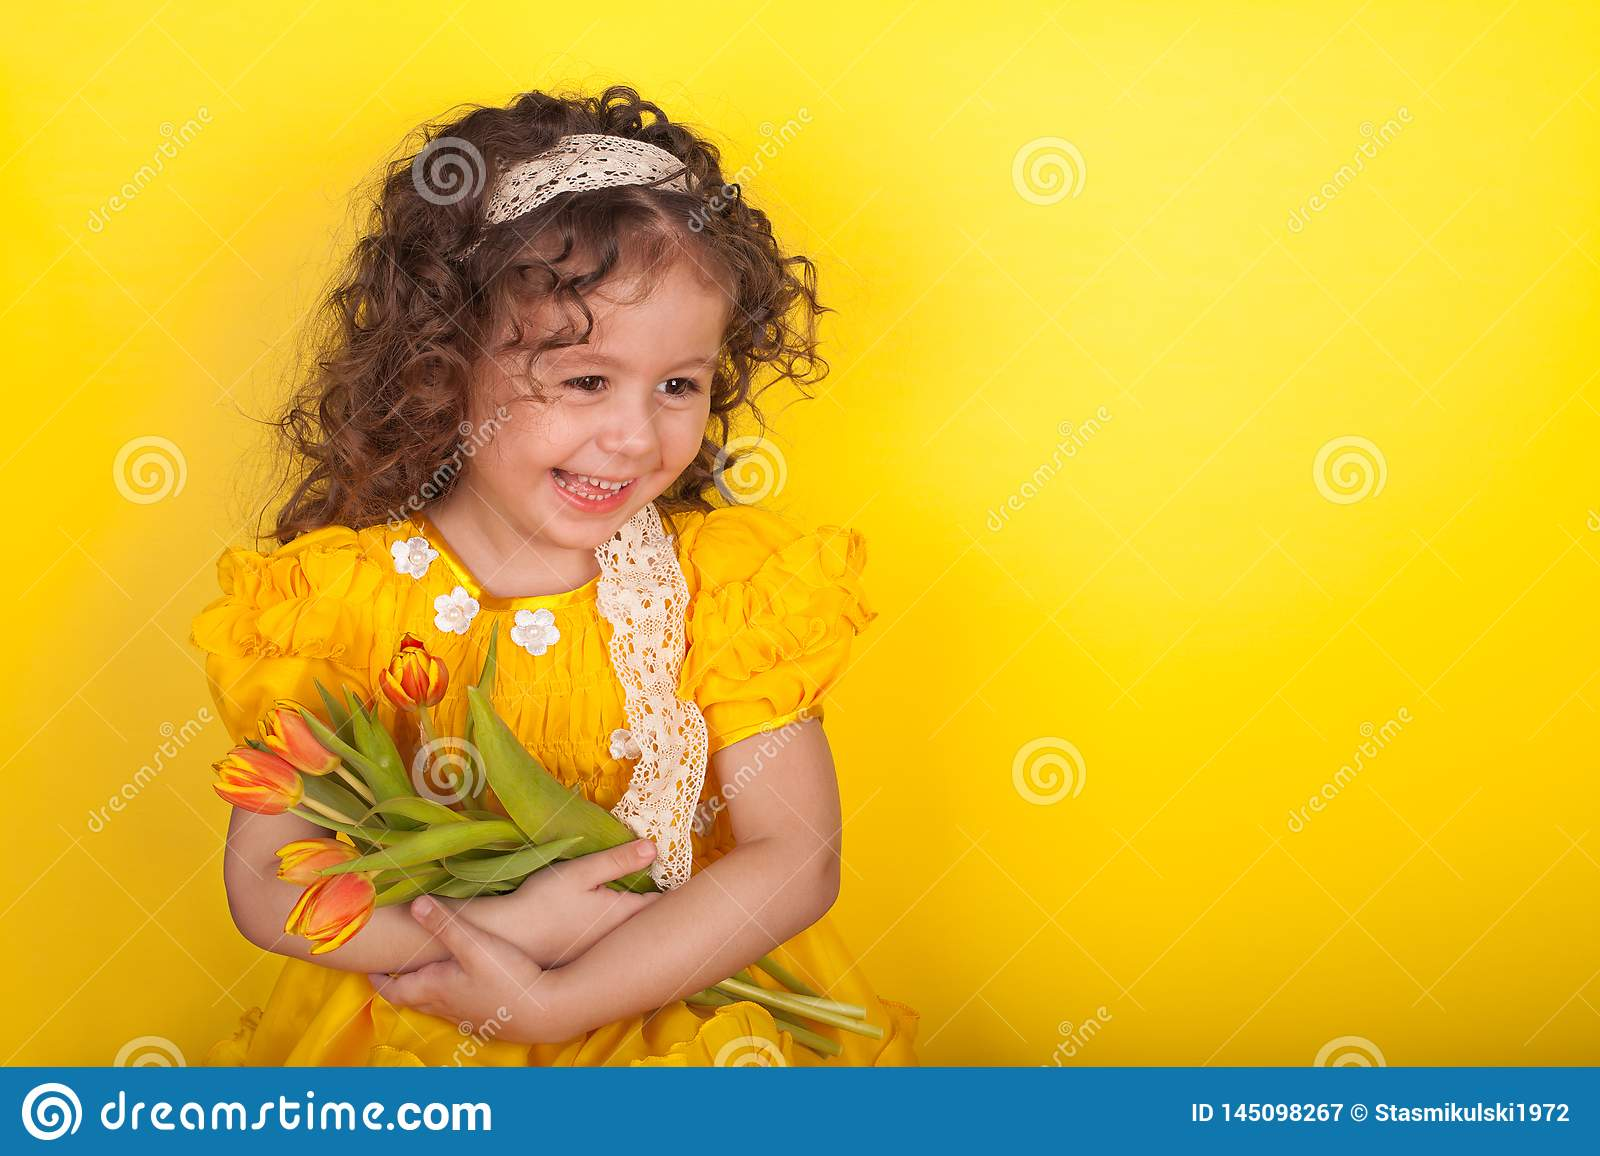 Little girl with tulips in hands on yellow background